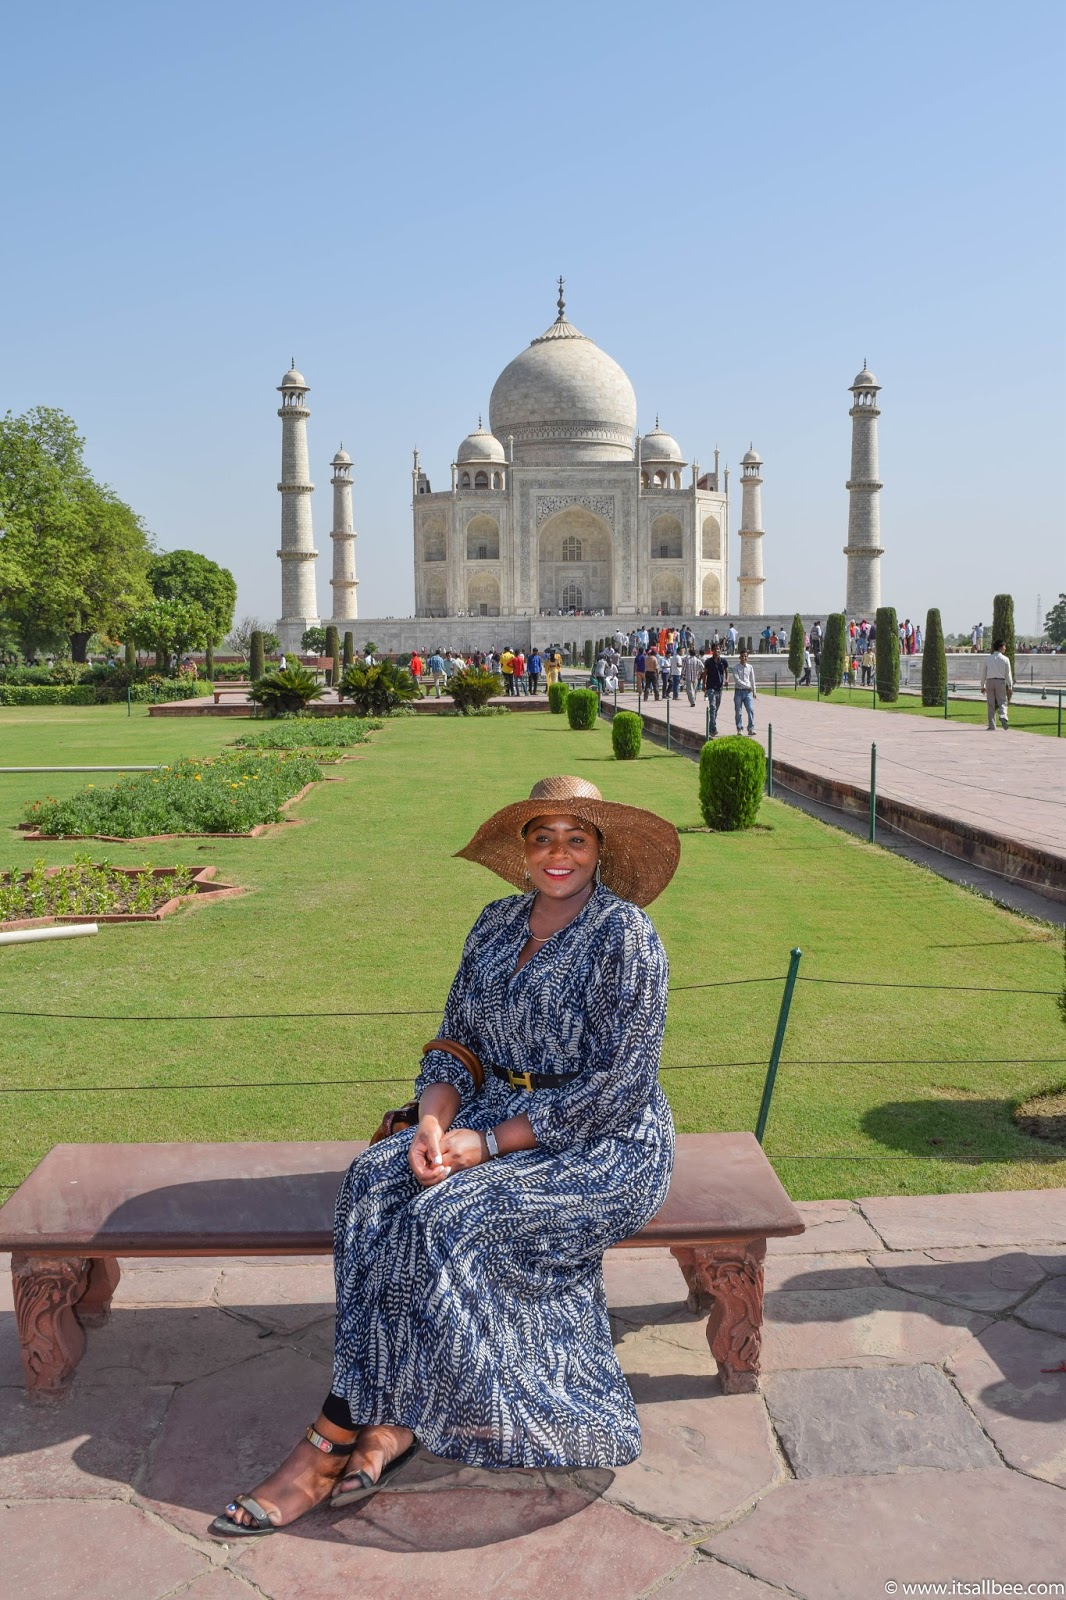 Taj Mahal,  Agra - India. Photo by Bianca - www.itsallbee.com